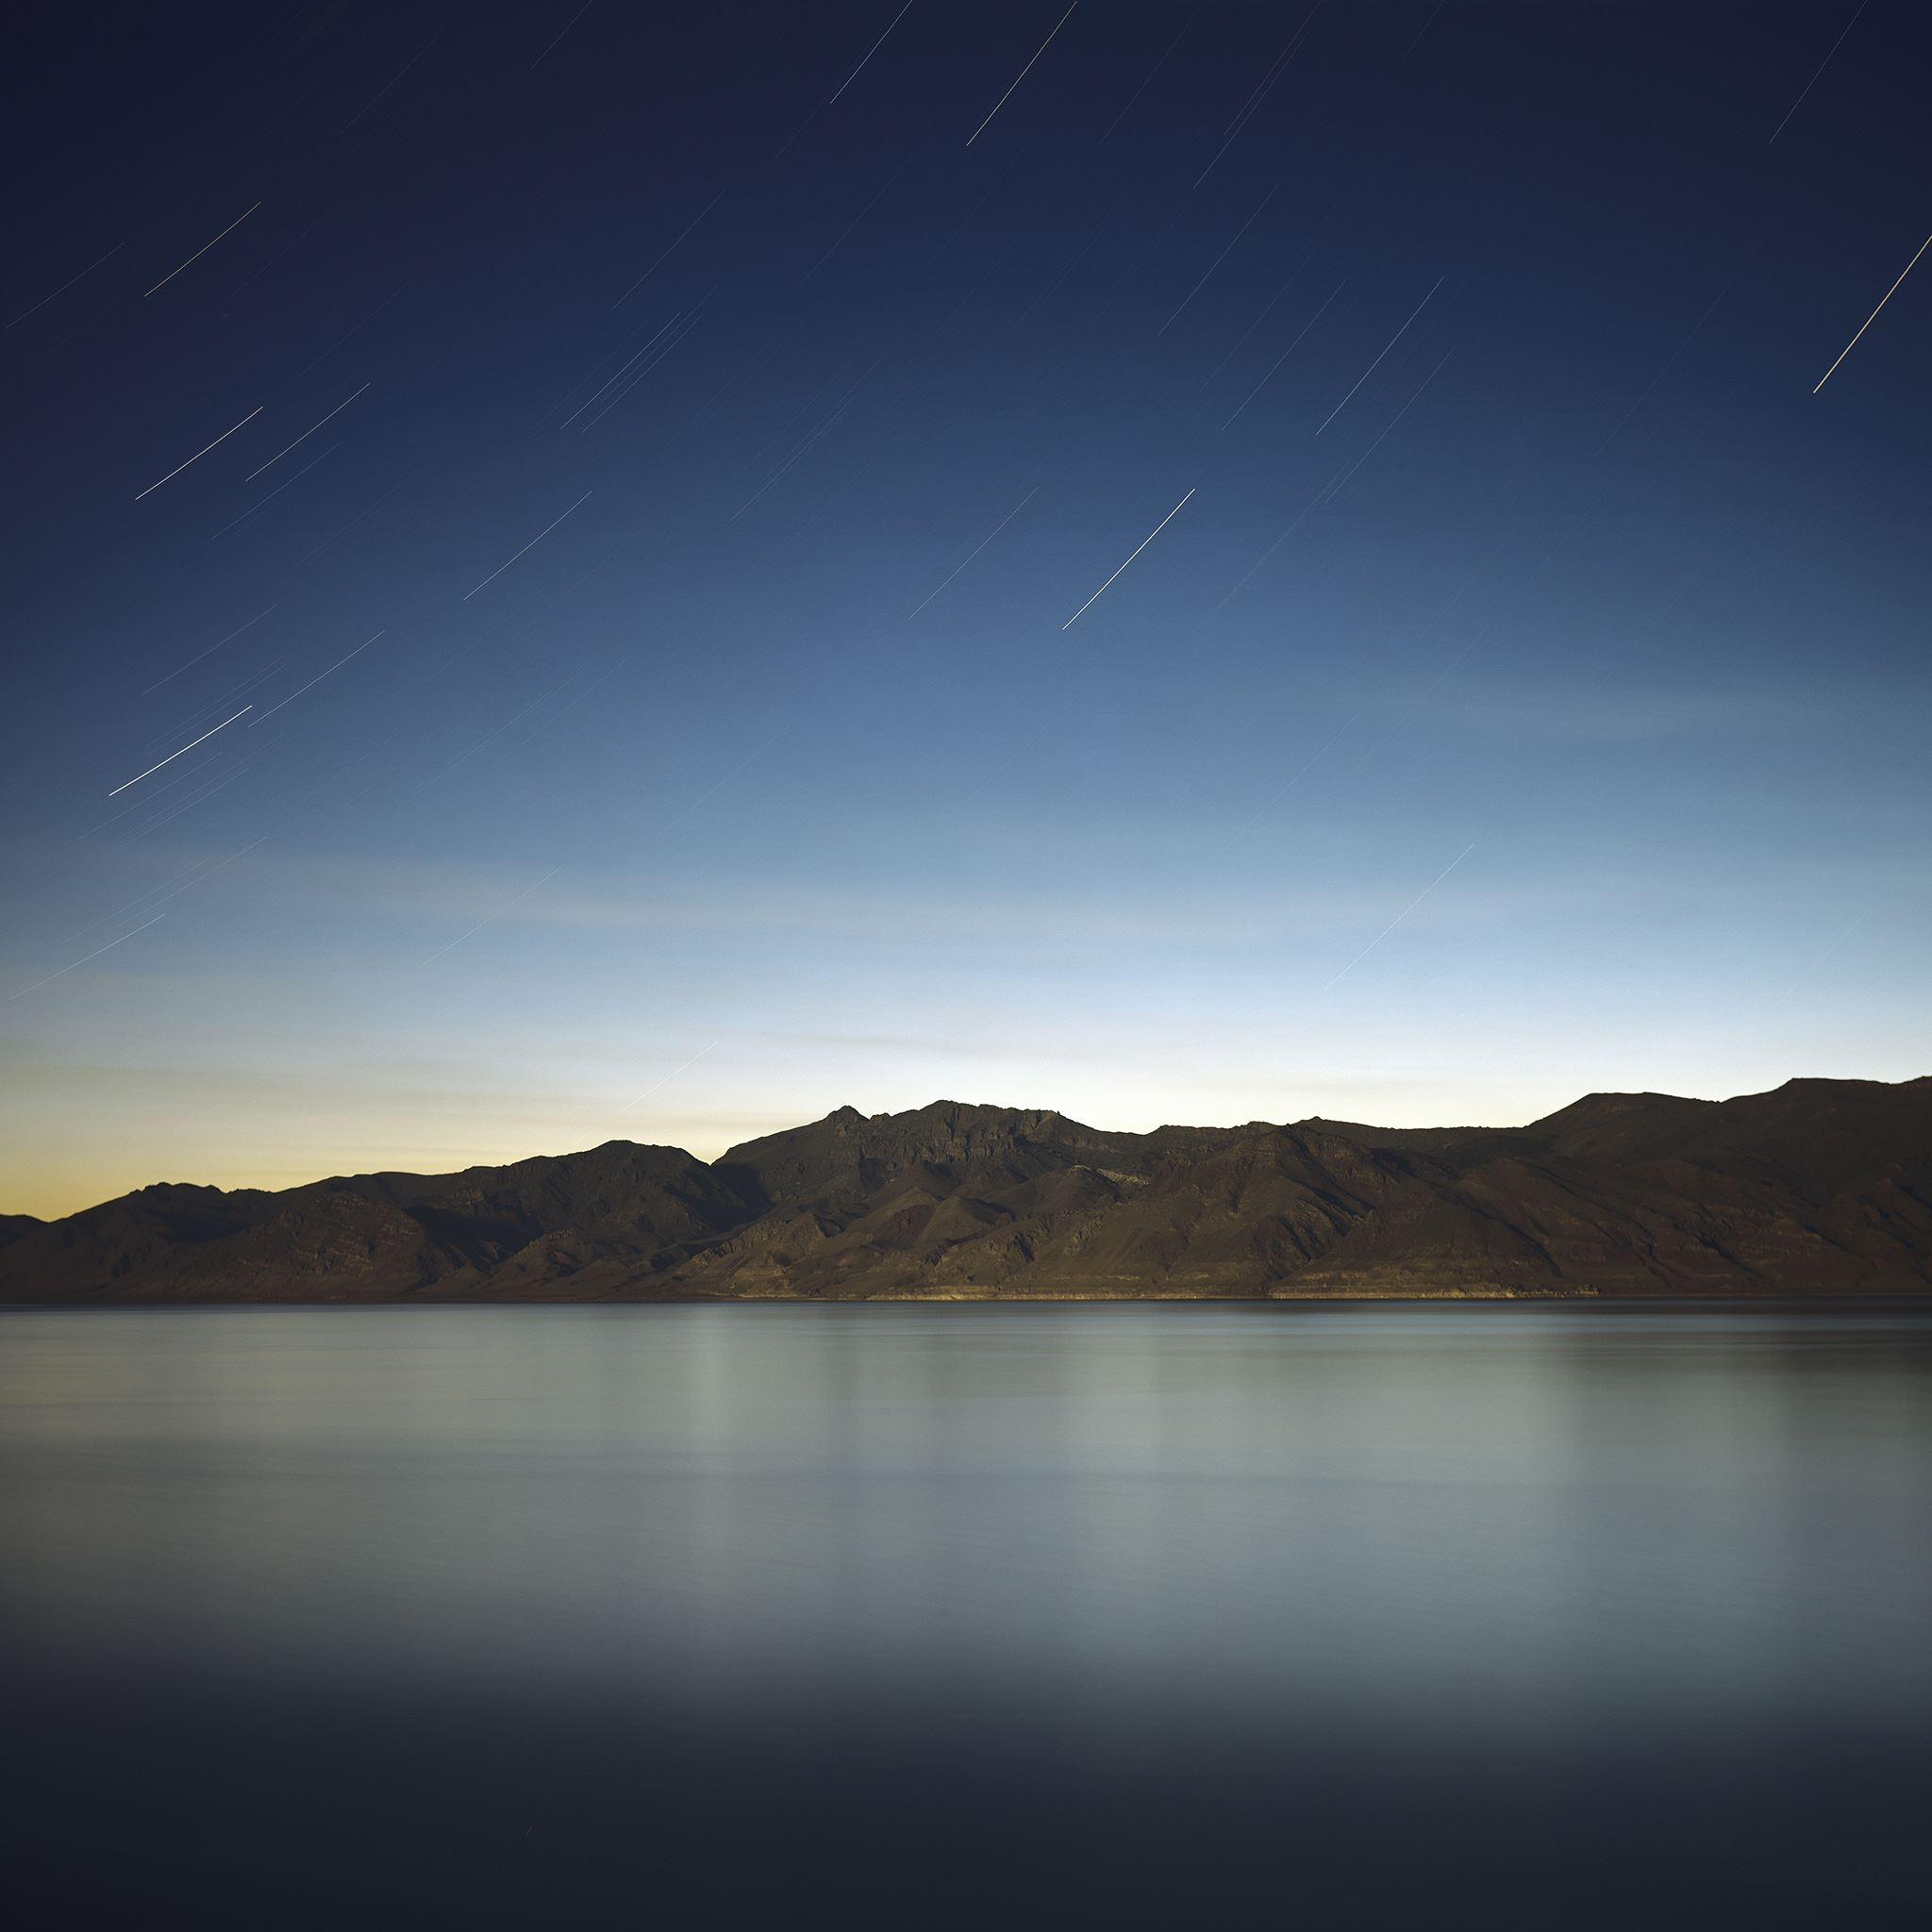 Meteor Across Mountain Lake Skyview iPad Air wallpaper